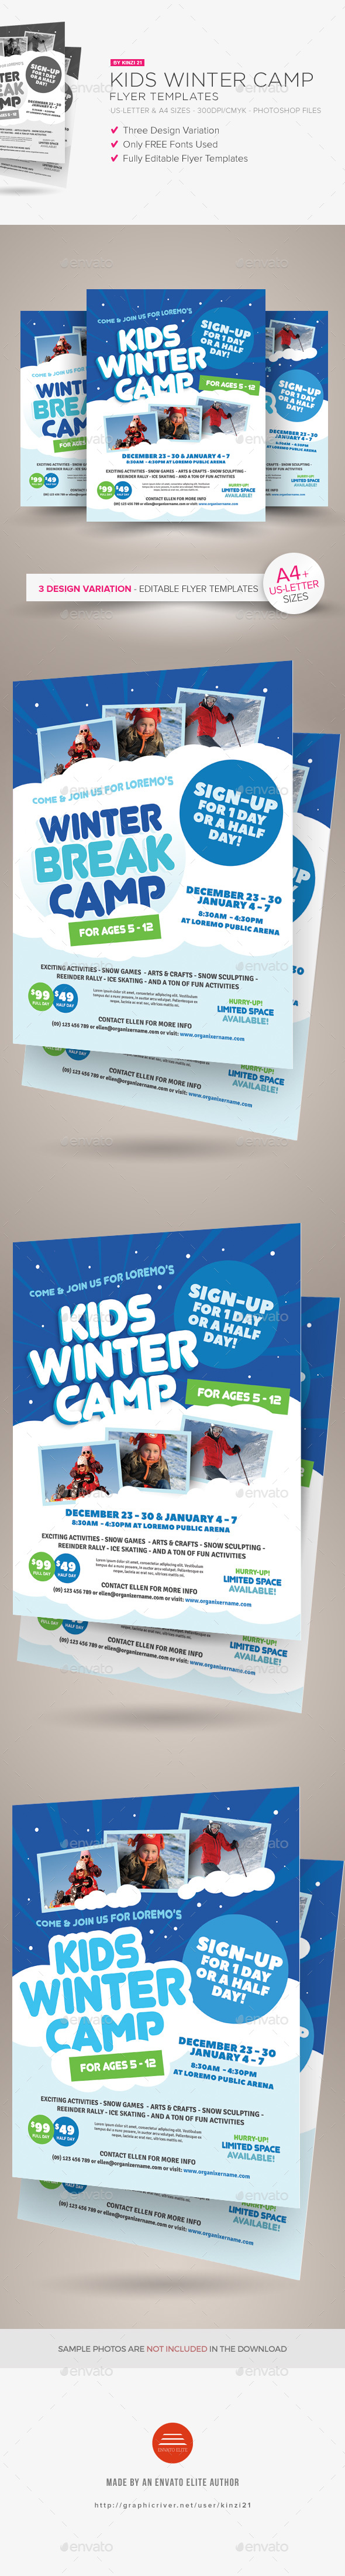 Kids Winter Camp Flyer Templates - Miscellaneous Events